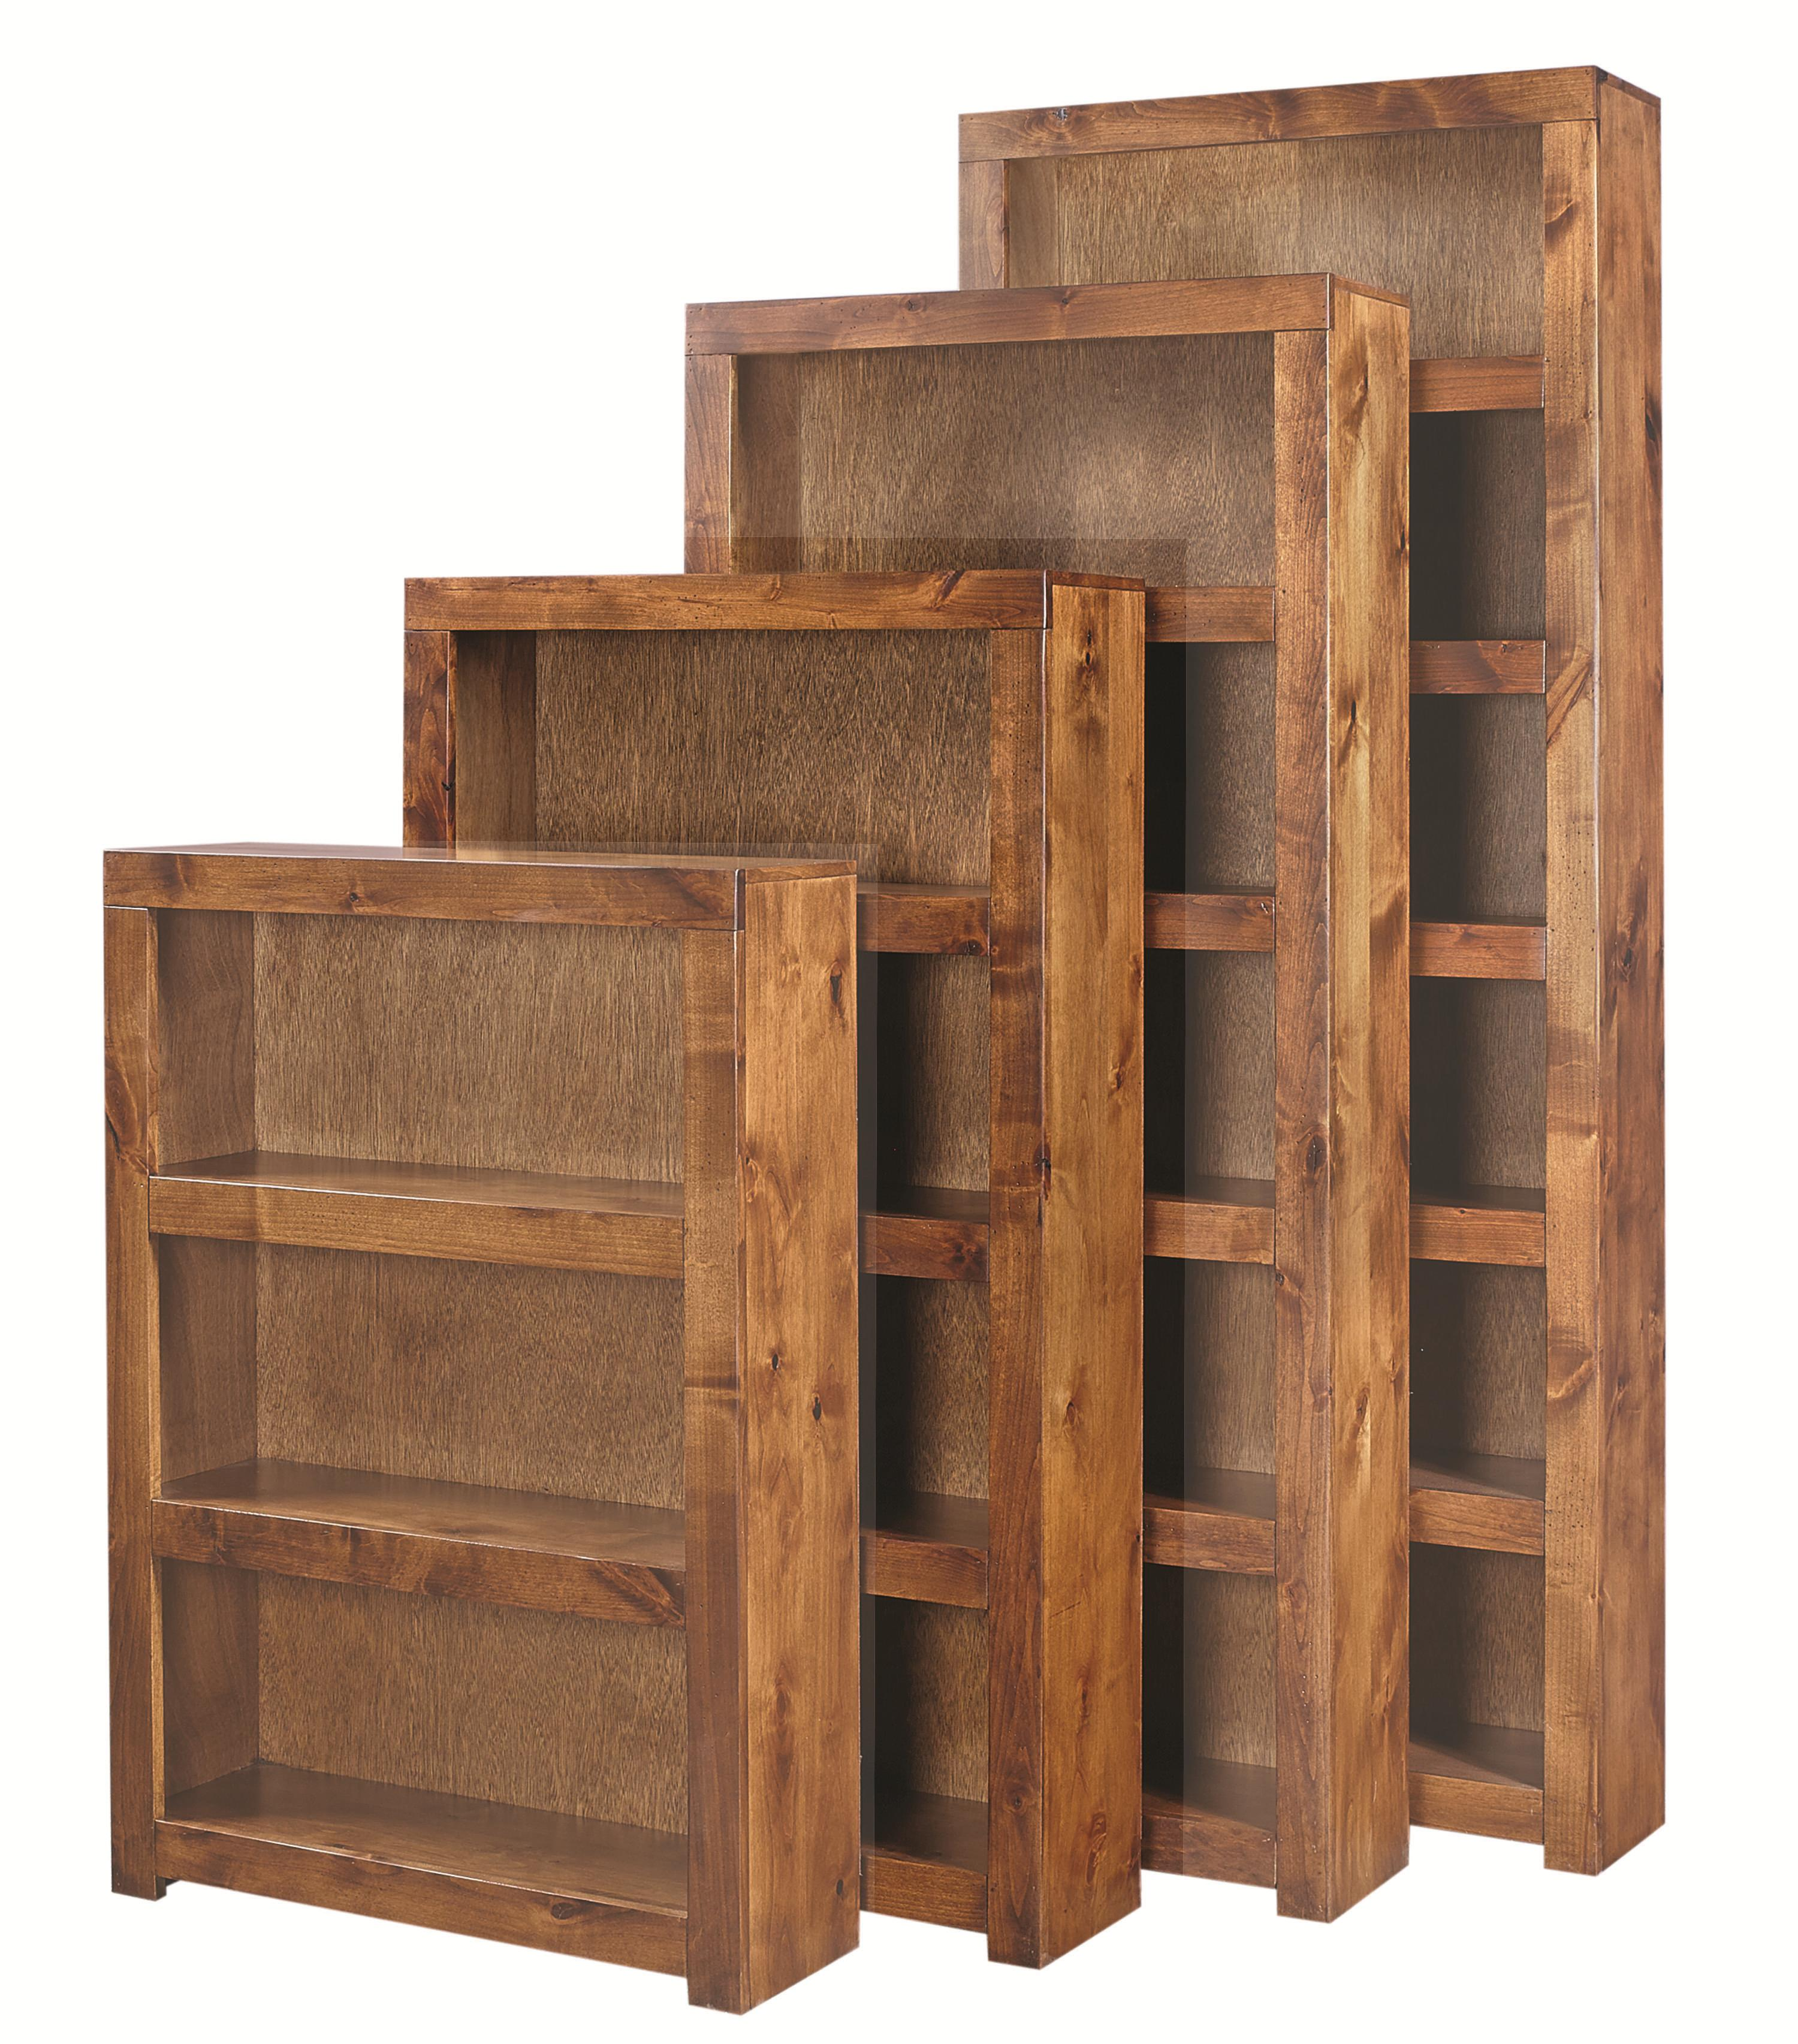 Contemporary Alder 60 Inch Bookcase by Aspenhome at Walker's Furniture